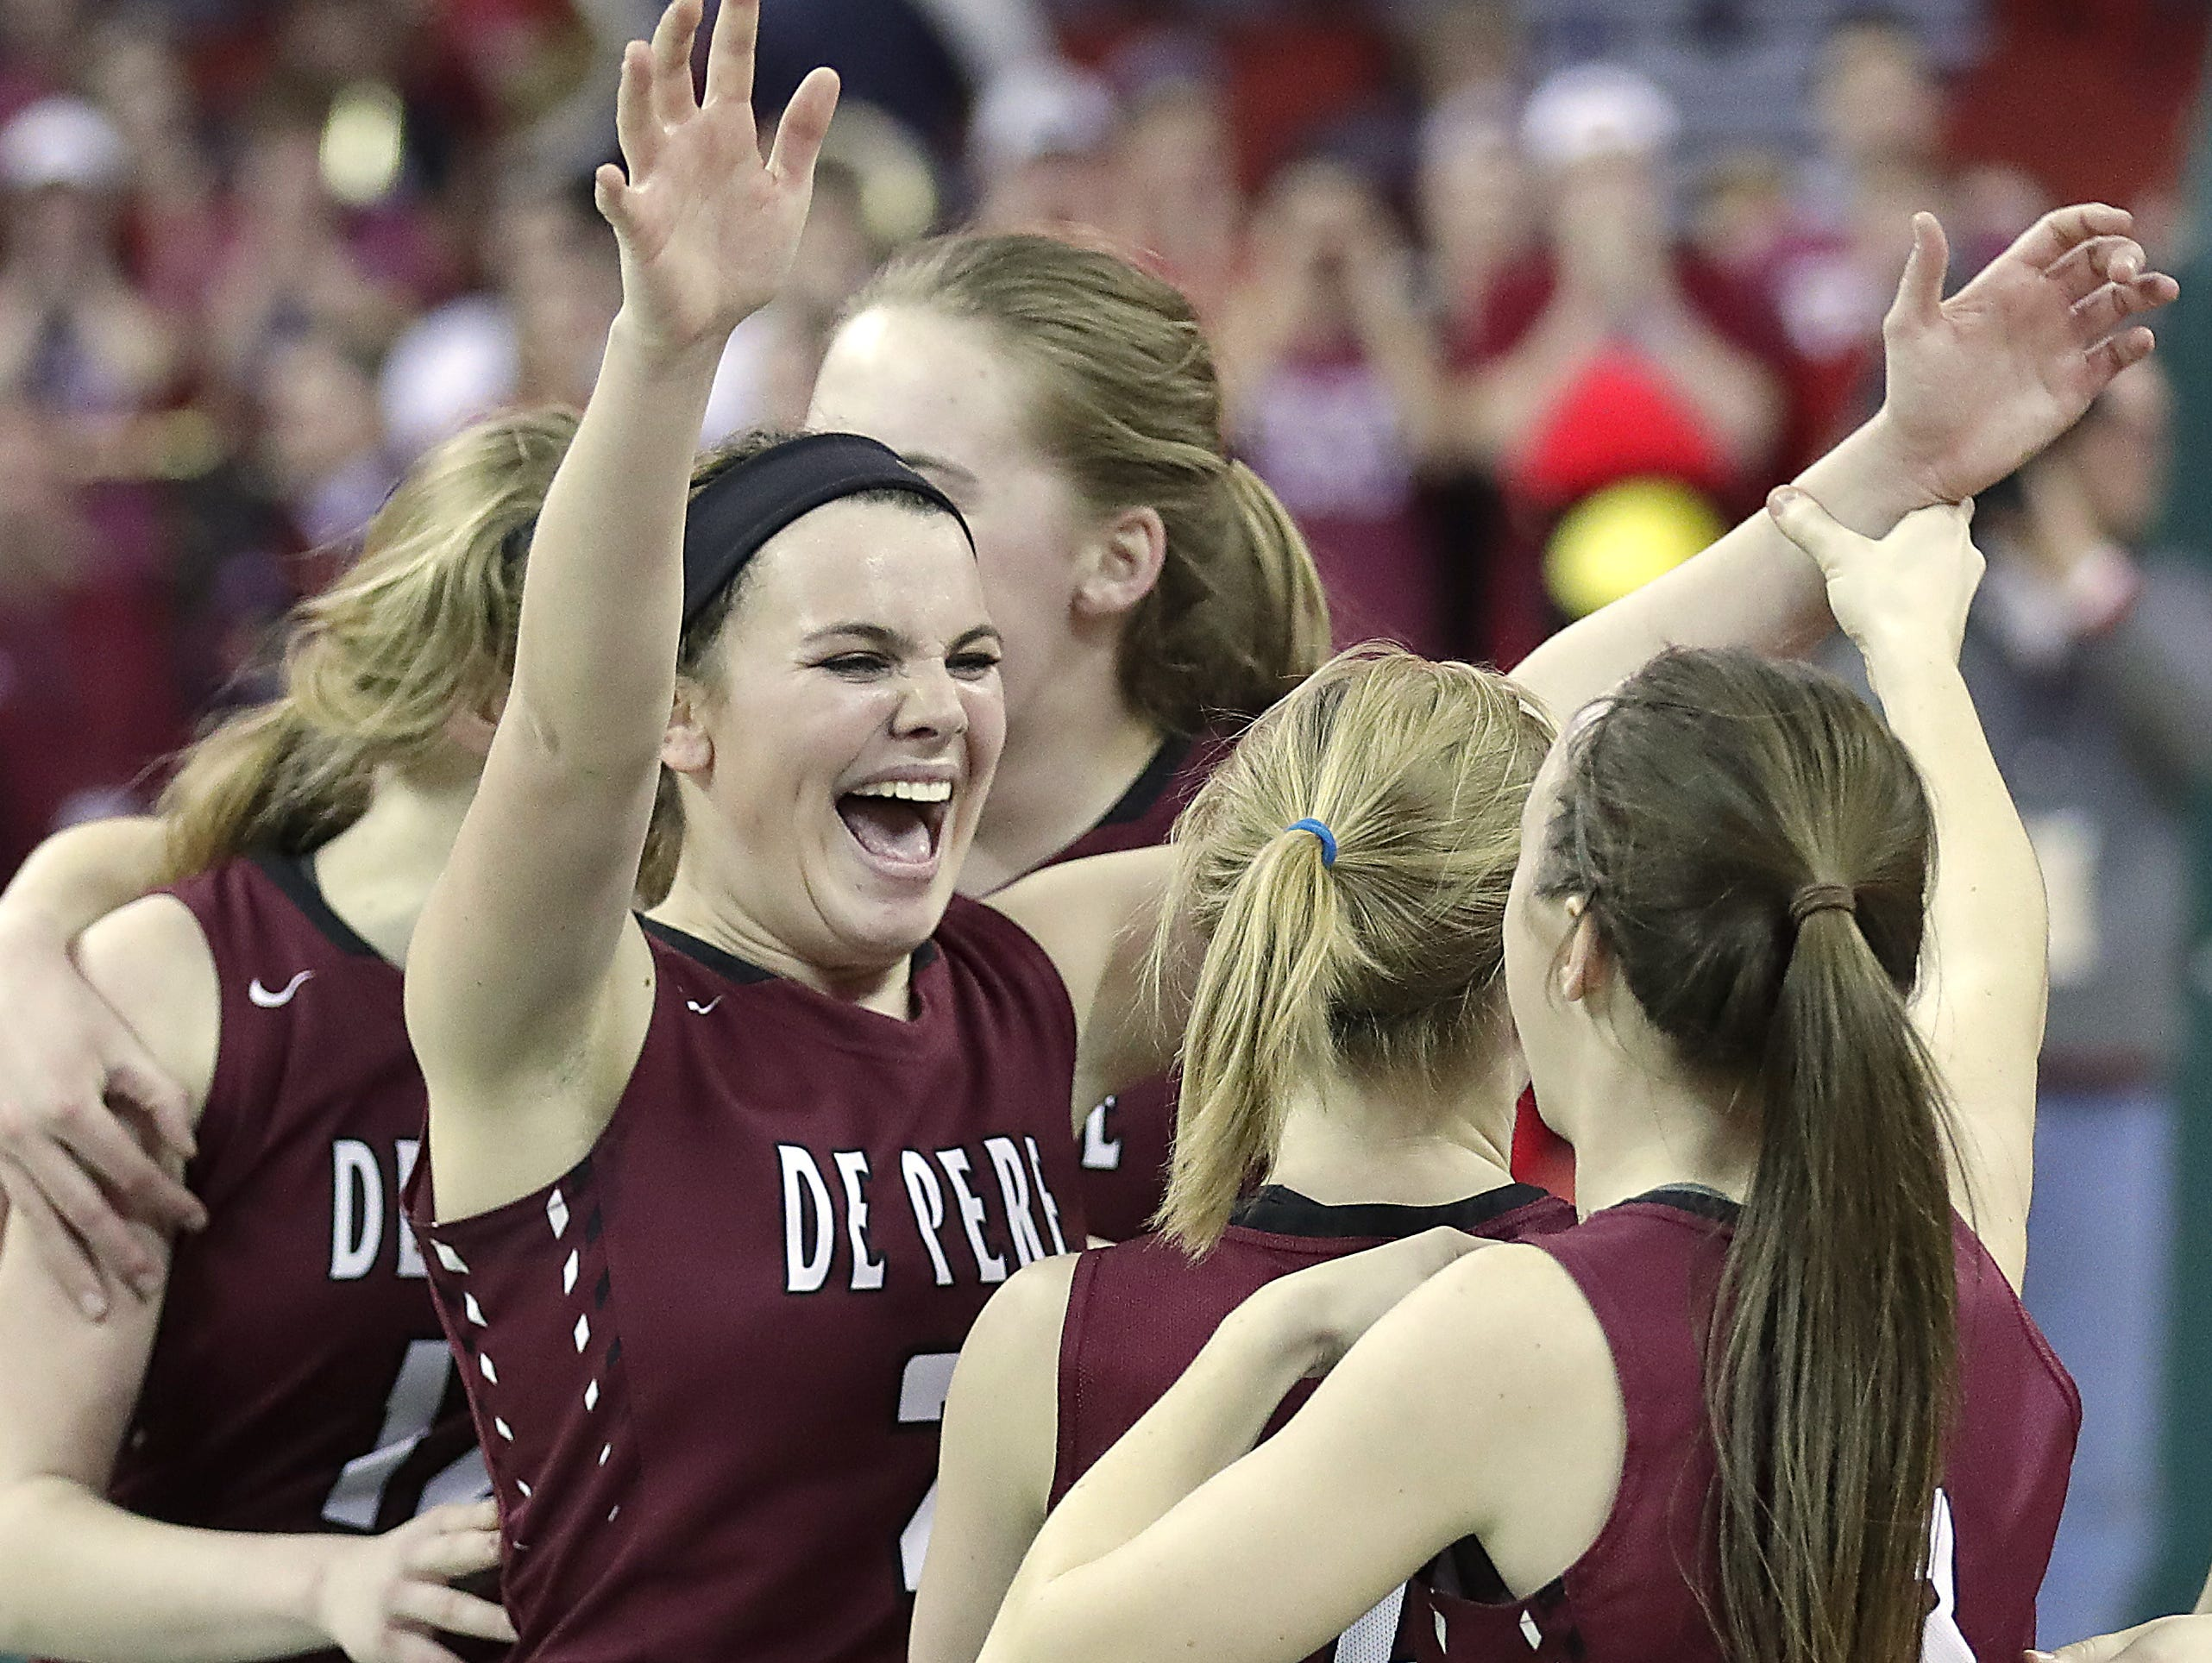 De Pere Annie Schneider cheers as the Redbirds win in overtime against Middleton in a WIAA Division 1 Girls State Basketball semifinal at the Resch Center in Ashwaubenon Friday.